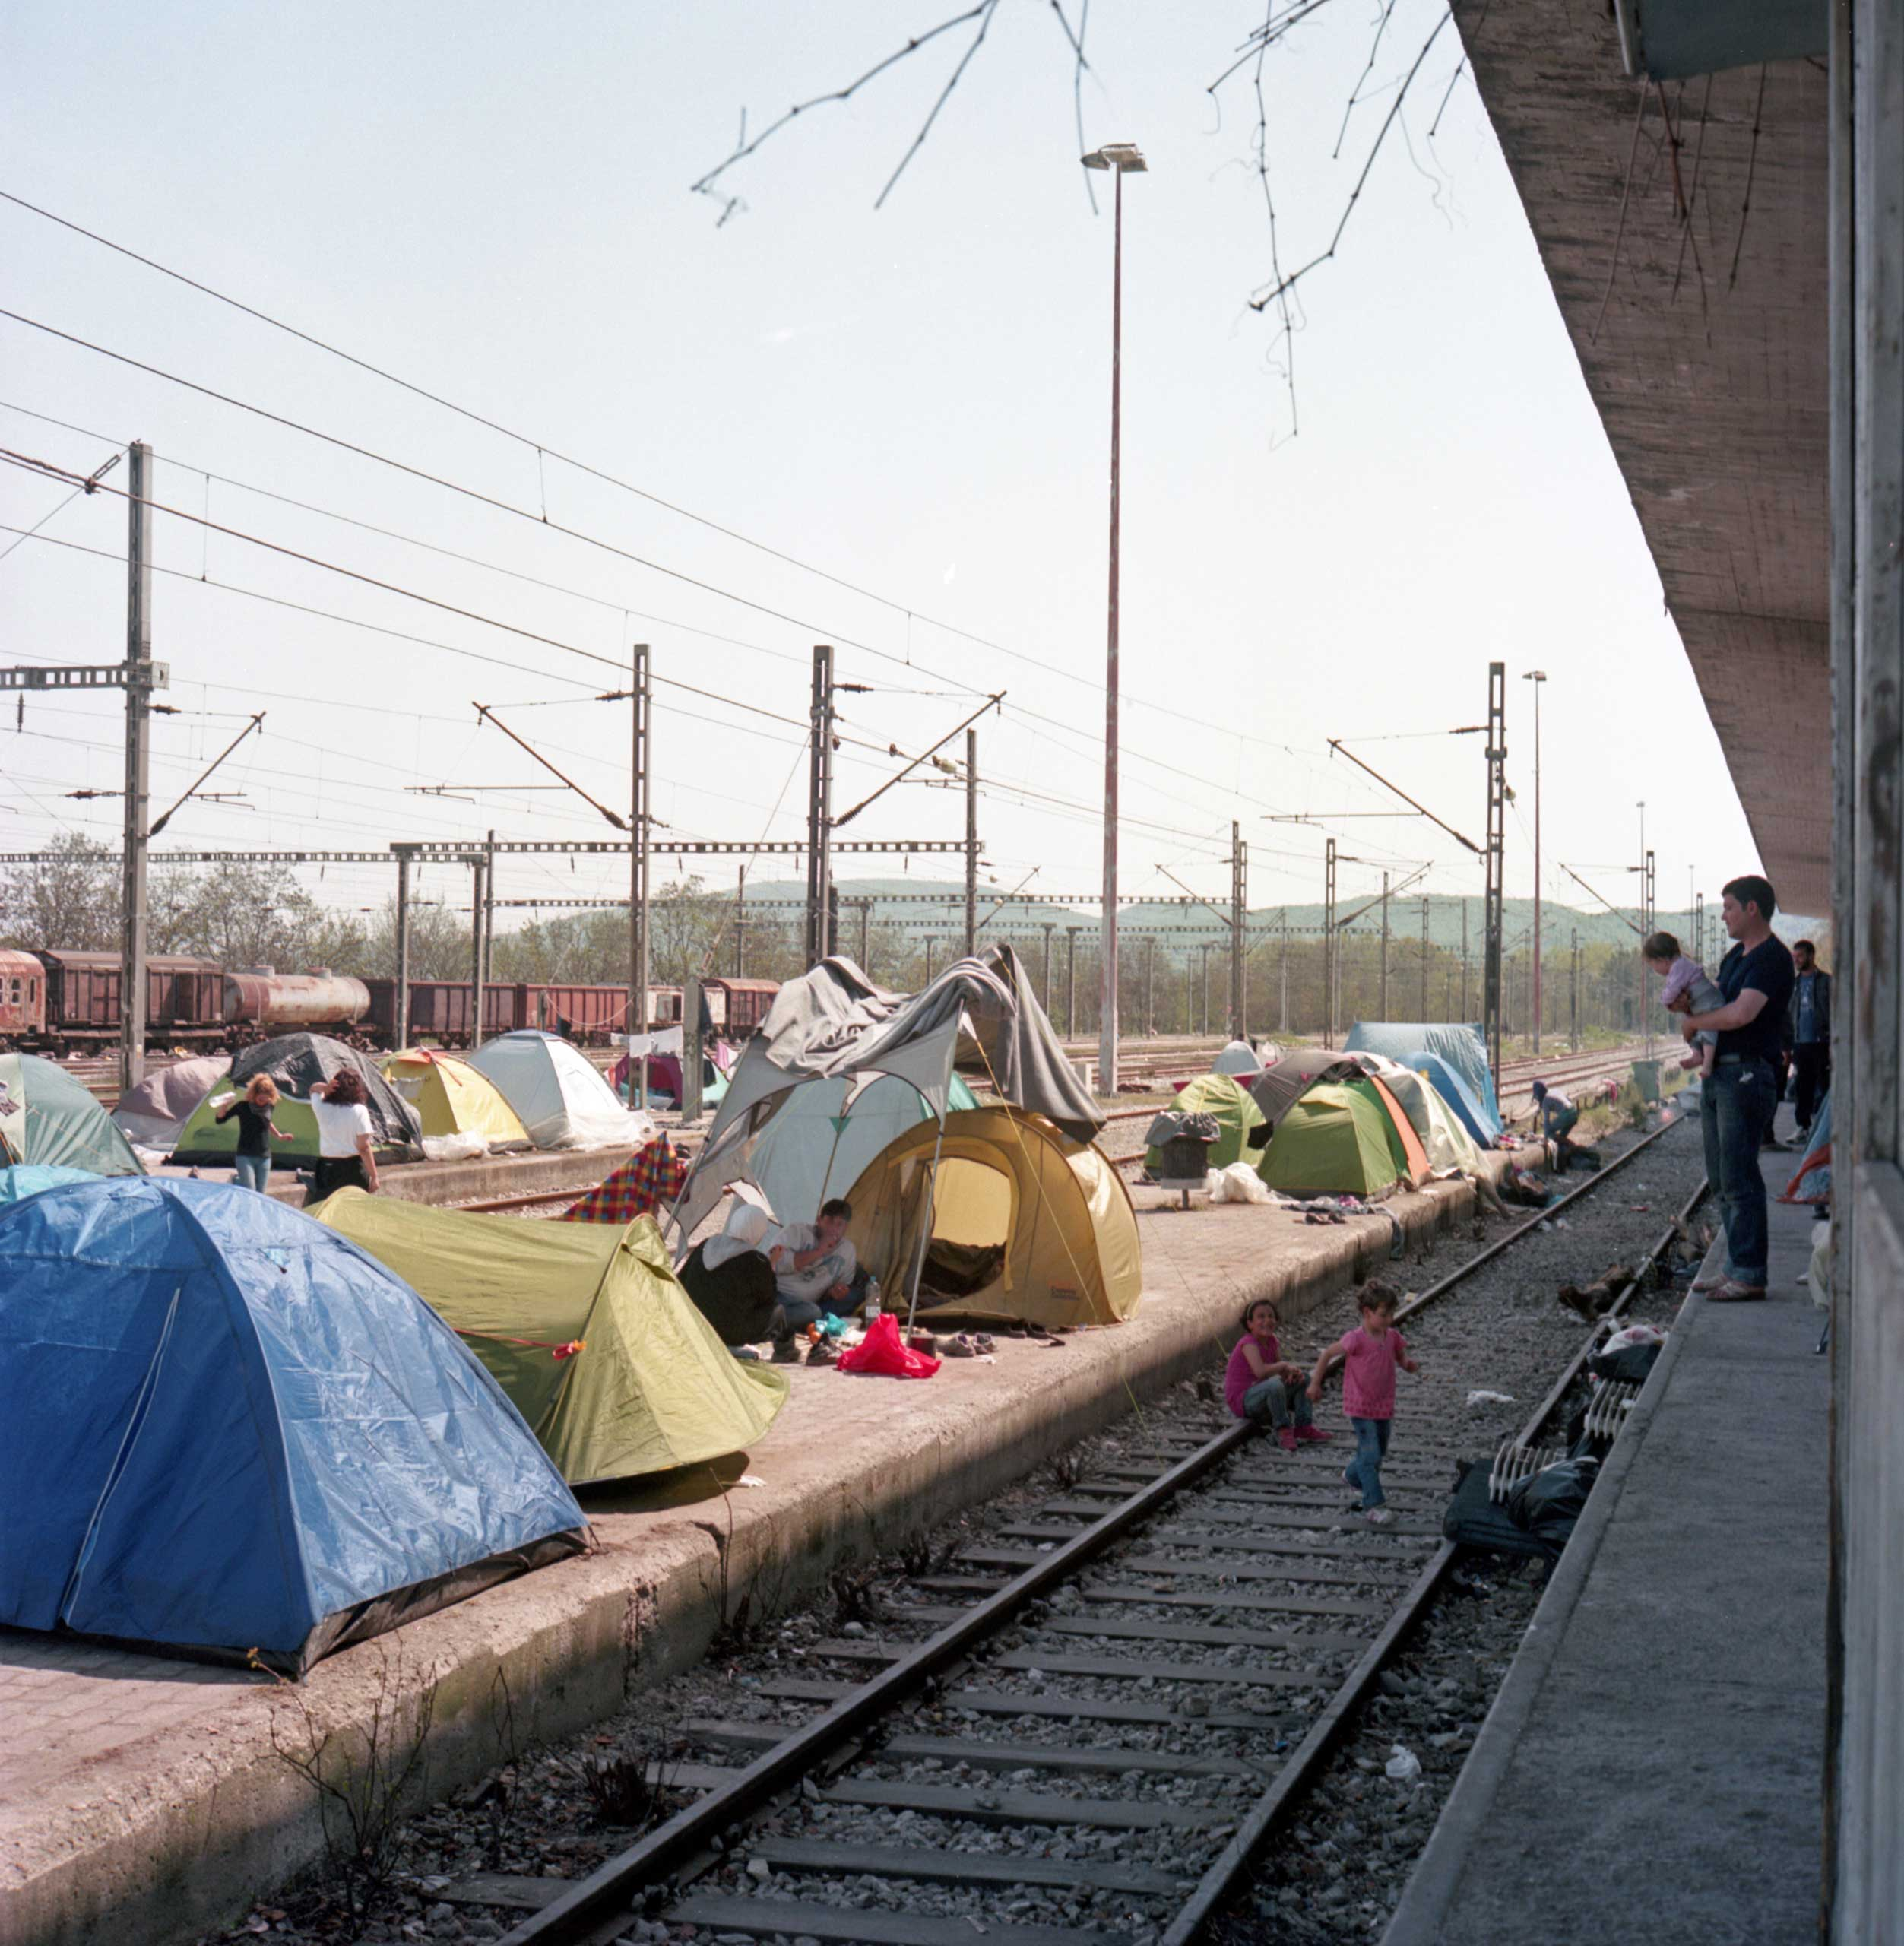 Refugee tents have spread to the village's railway platforms. Idomeni, Greece. April 2016.